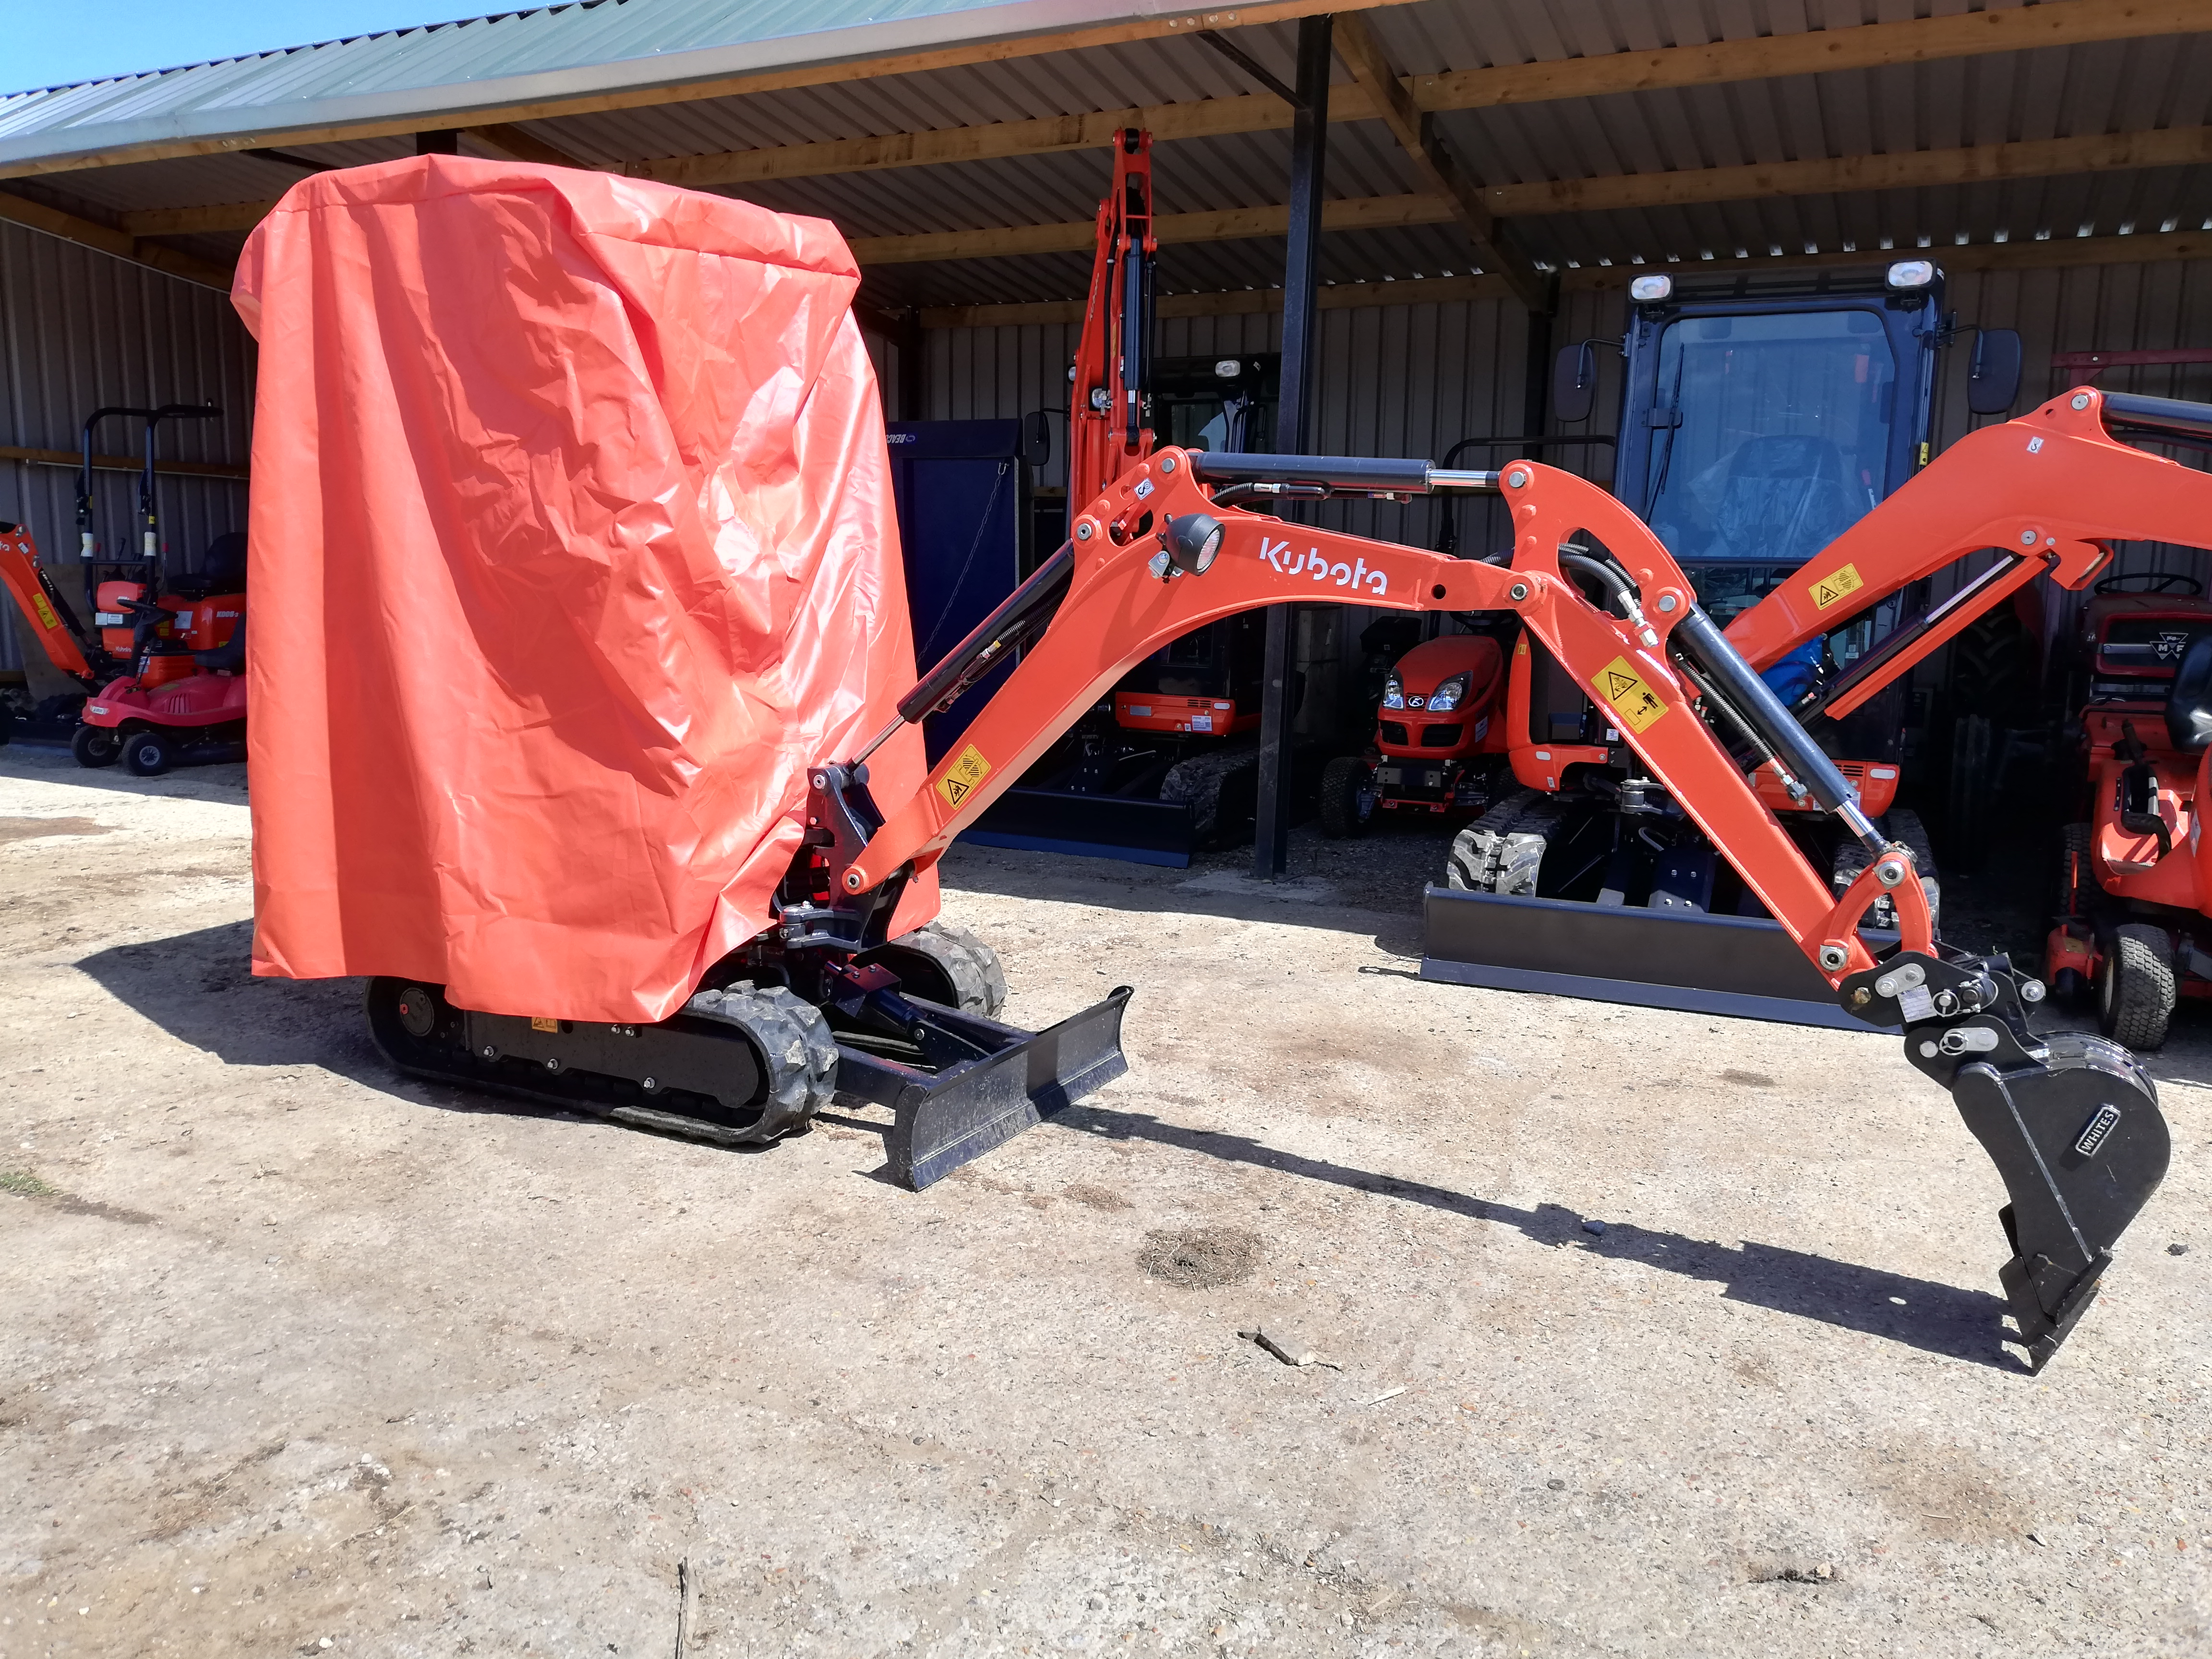 Digger Cover to fit - KX015 - 019 Kubota Excavators